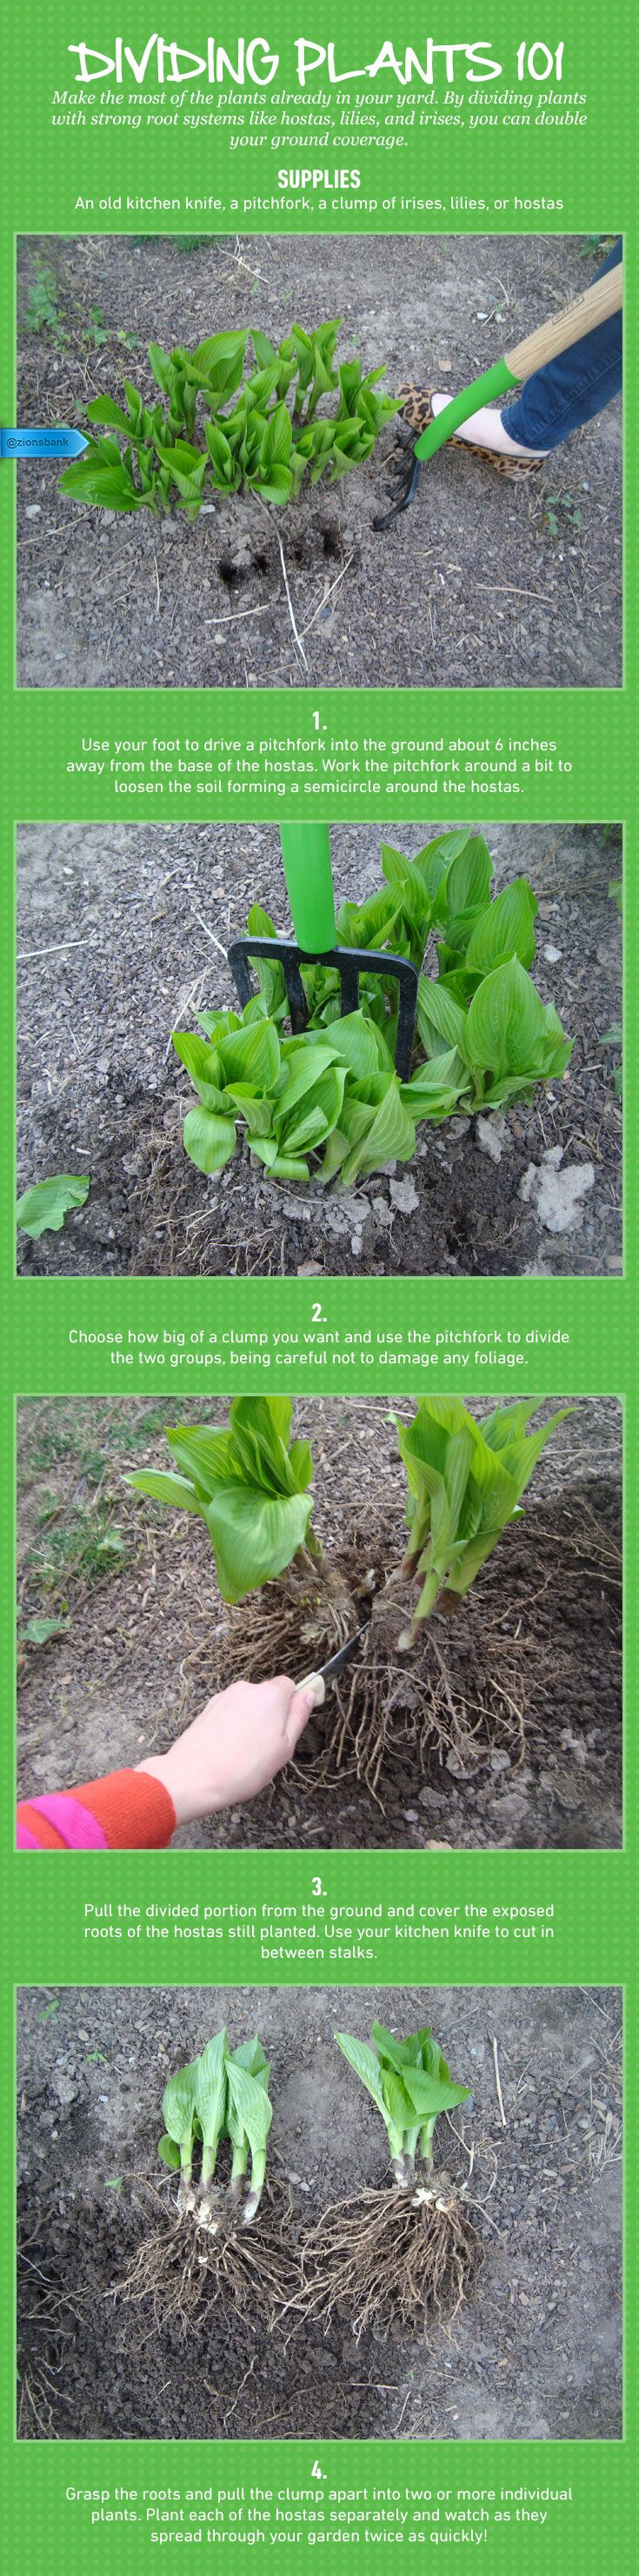 Dividing Plants 101: This old-school dividing technique maximizes existing plants in your yard so you don't have to buy expensive new ones. #gardening101 #keepblooming #readyforspring #hostas #plants #gardening